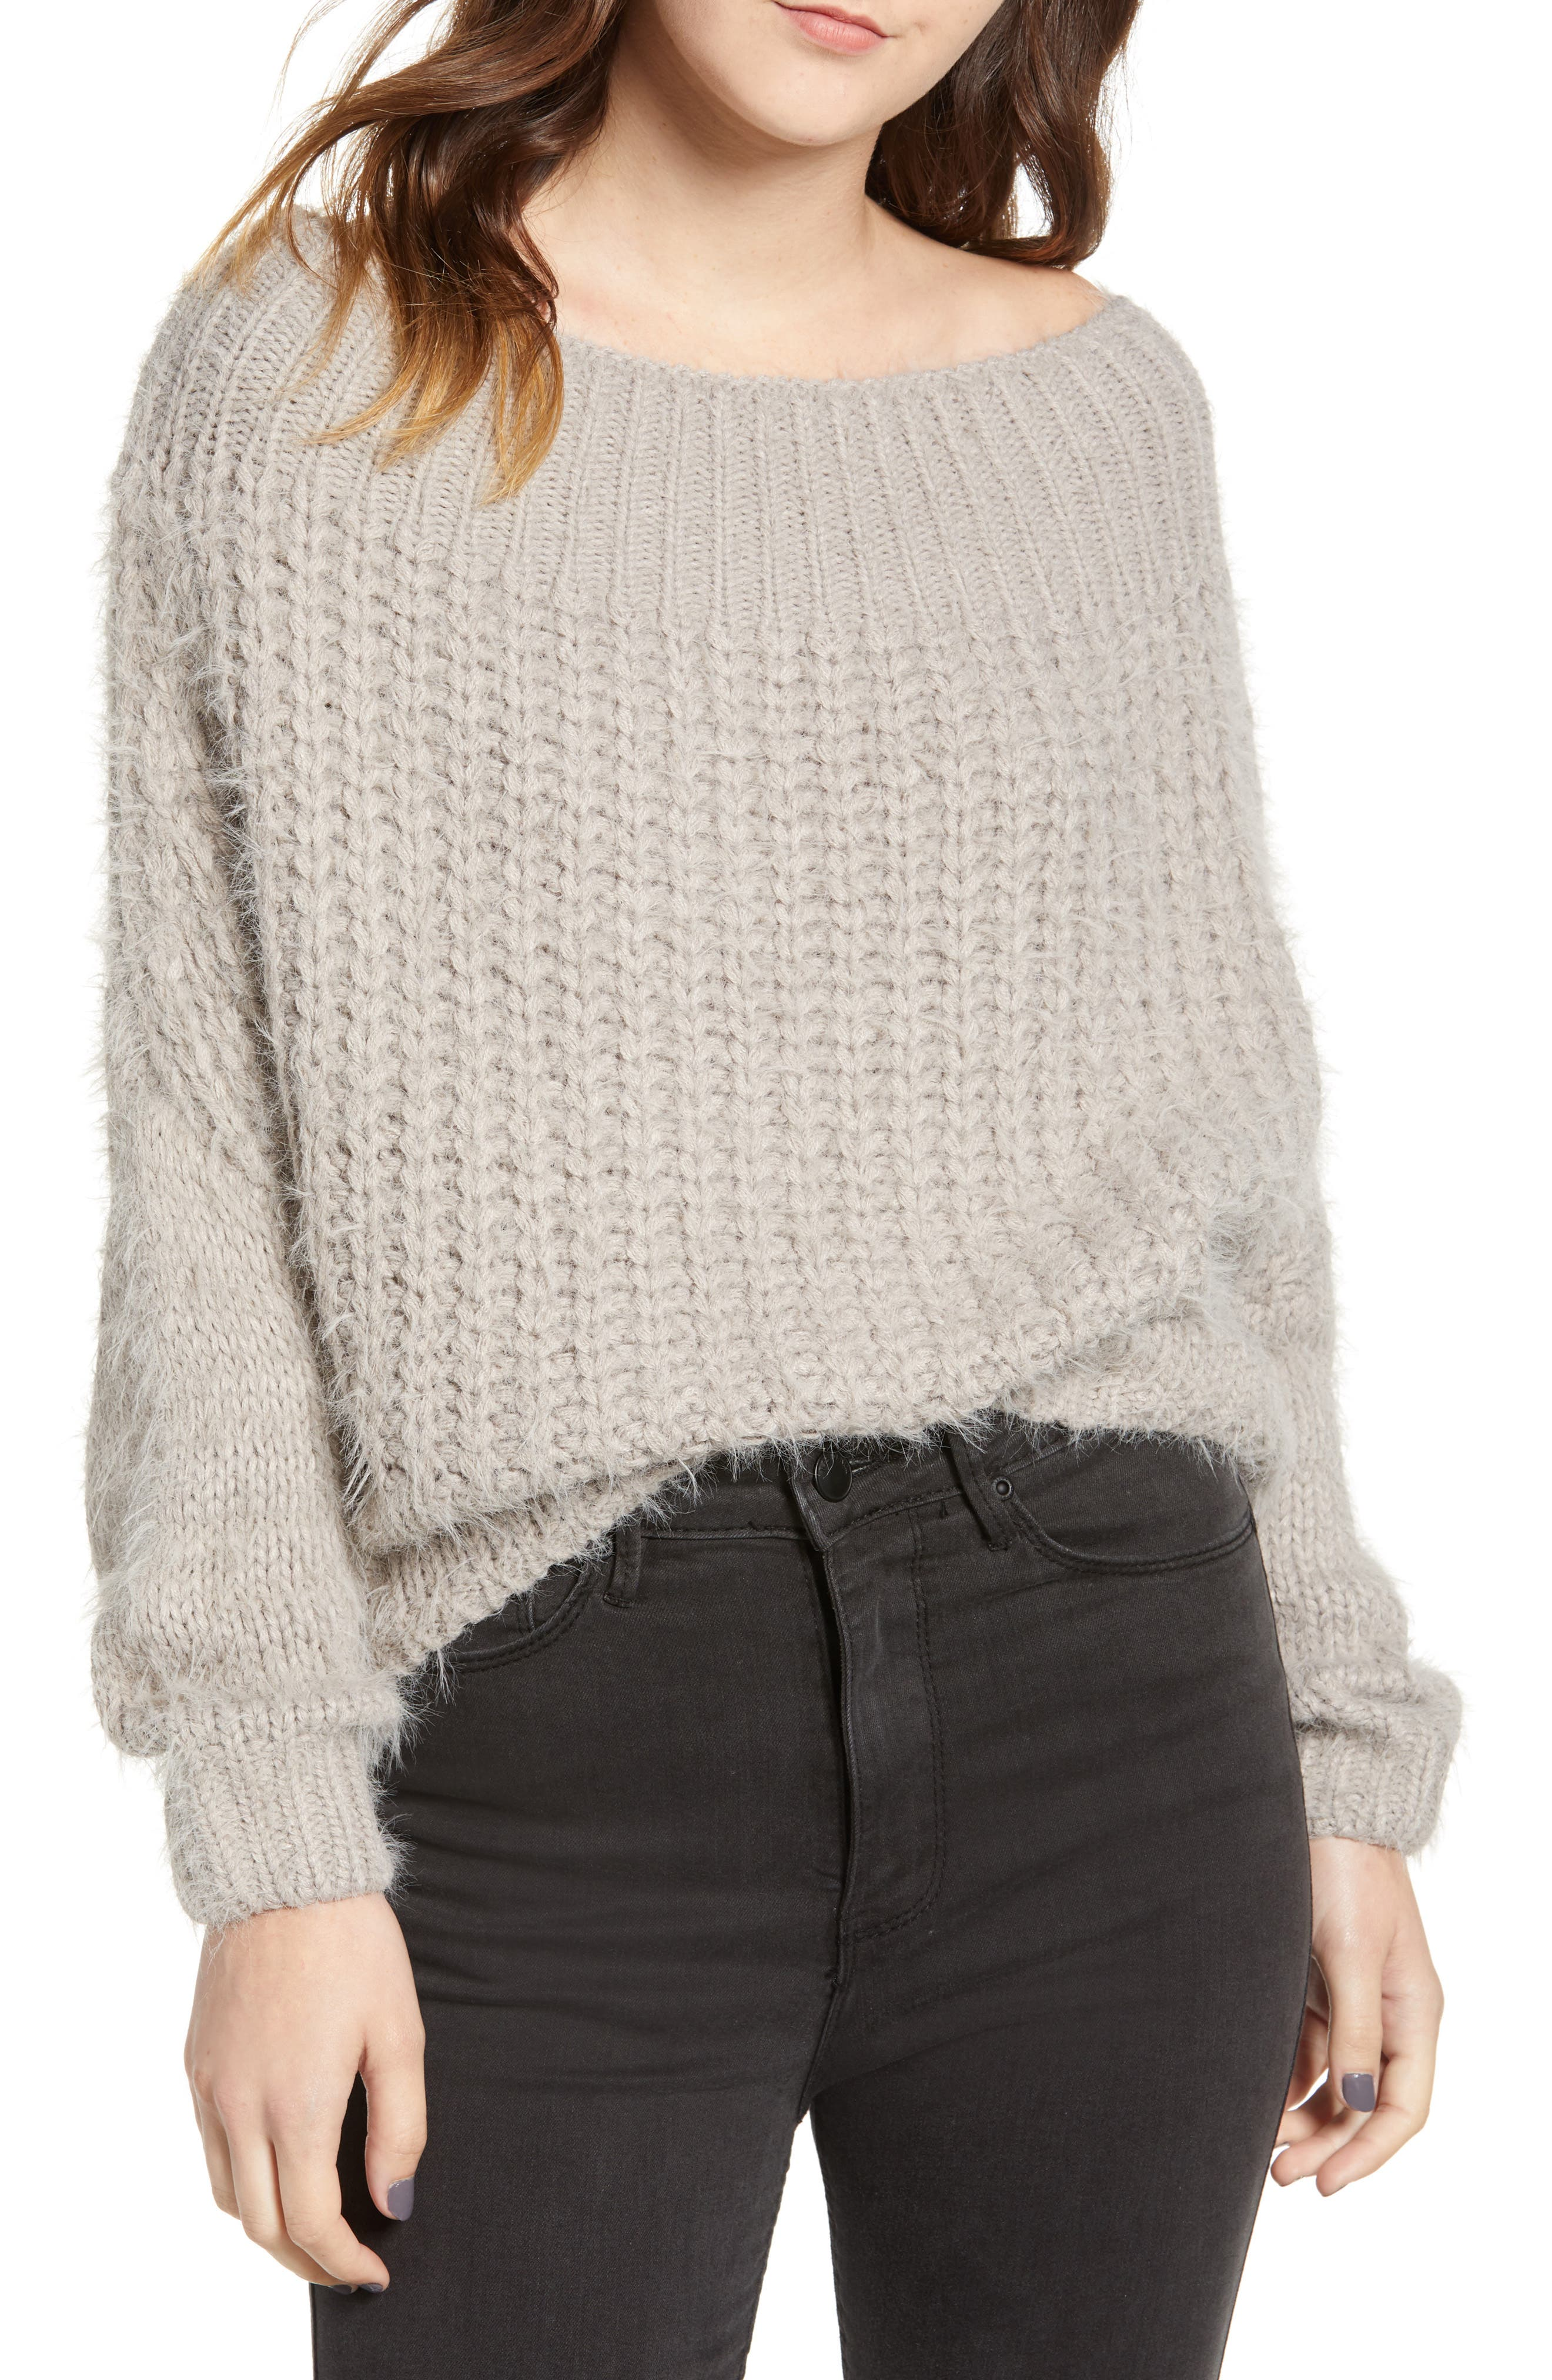 DREAMERS BY DEBUT Boatneck Knit Pullover, Main, color, MICRO GREY